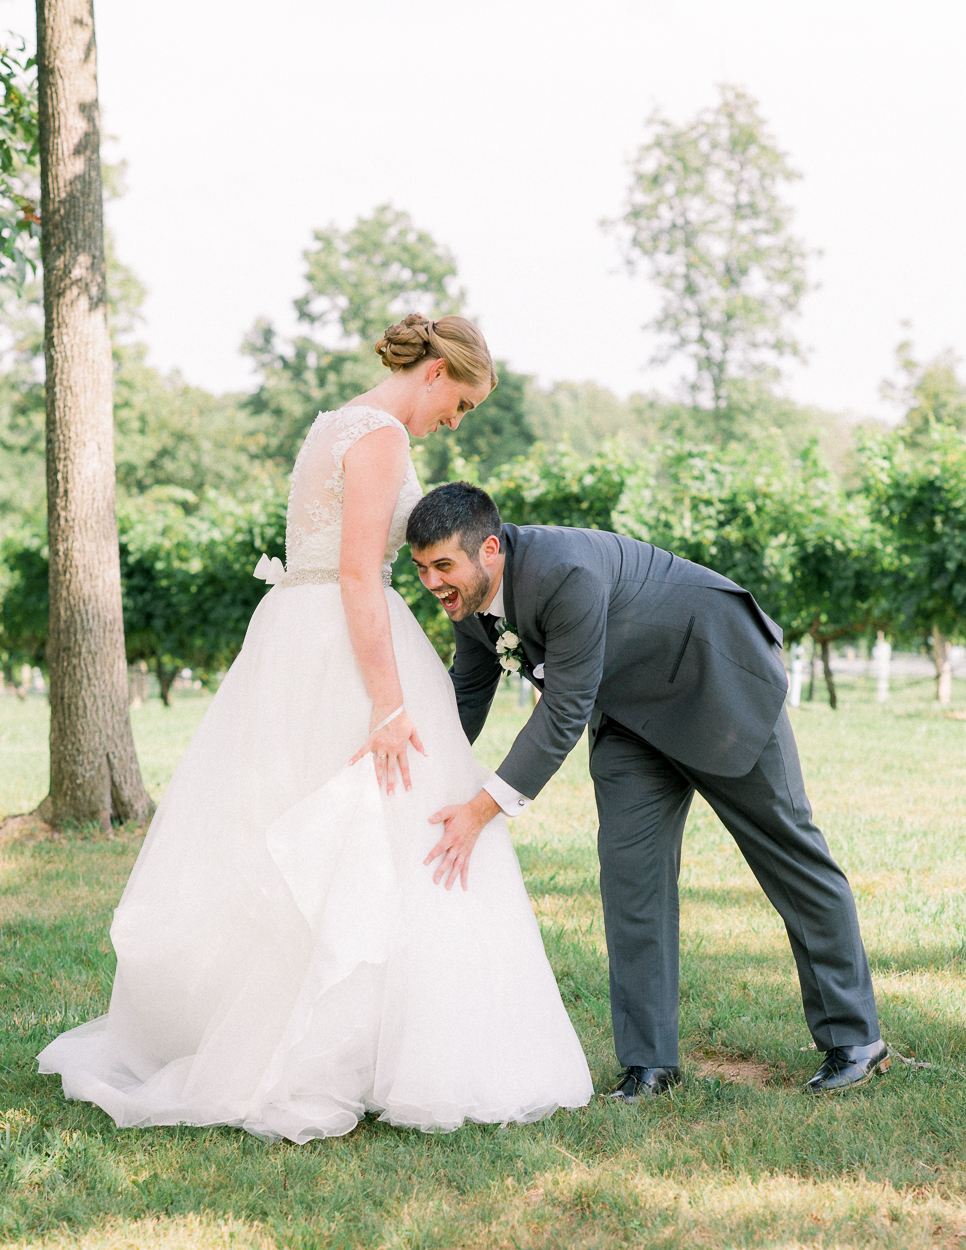 virginiawedding_vineyardwedding_LostCreekWinery_LeesburgWedding_youseephotography_Siegel (77).JPG